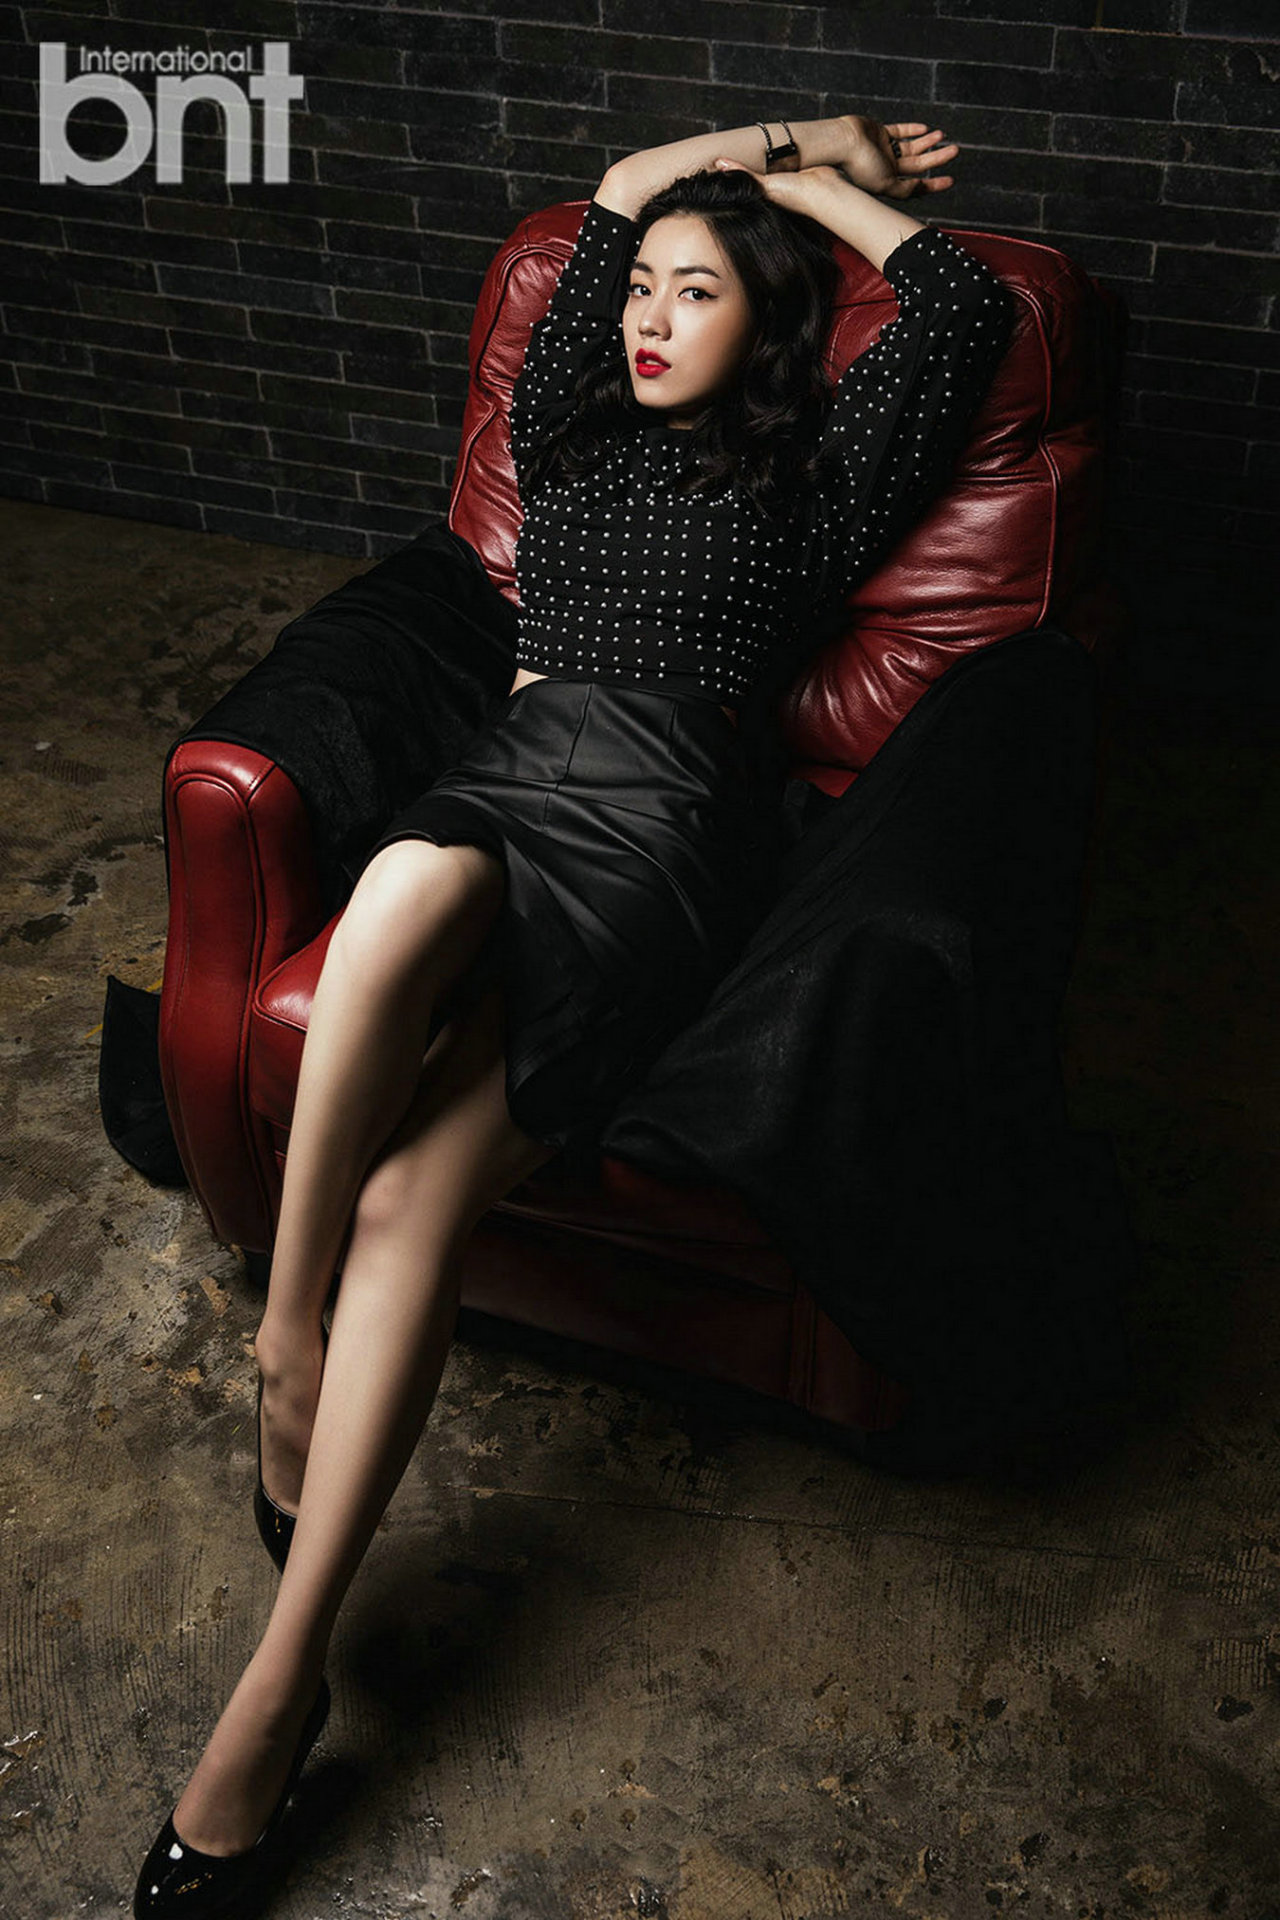 Hwa Young - bnt International March 2015